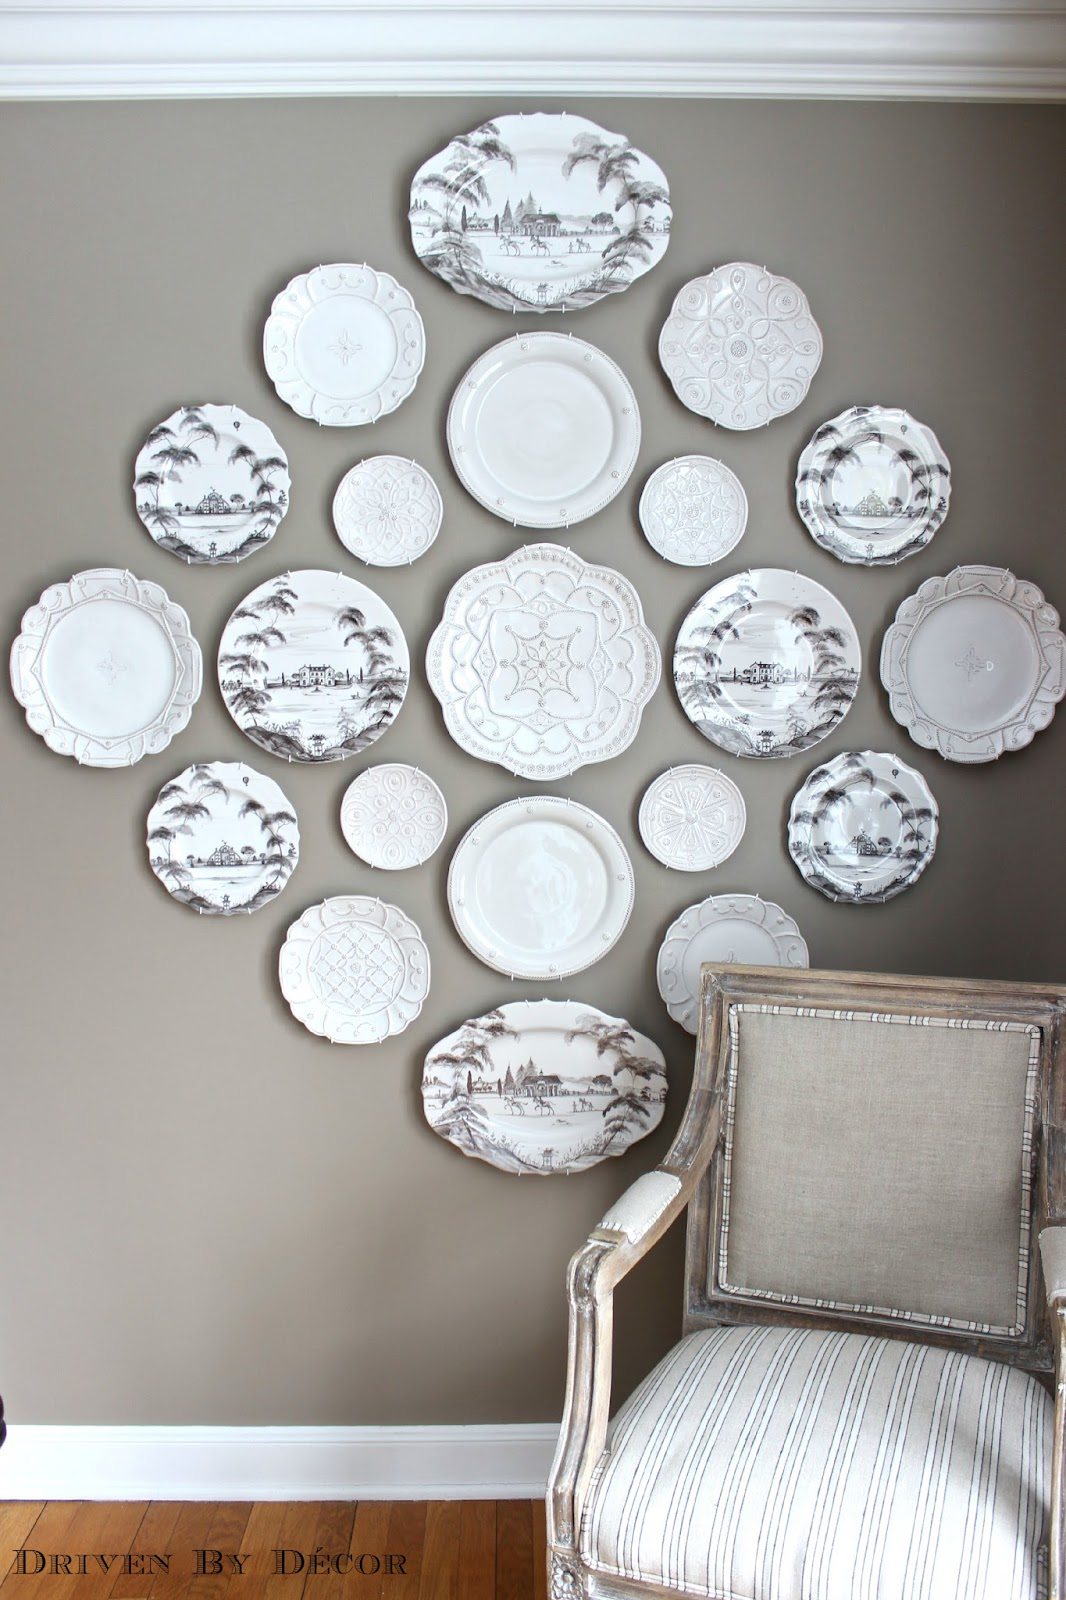 The Easy How-to for Hanging Plates on the Wall! | Driven ...